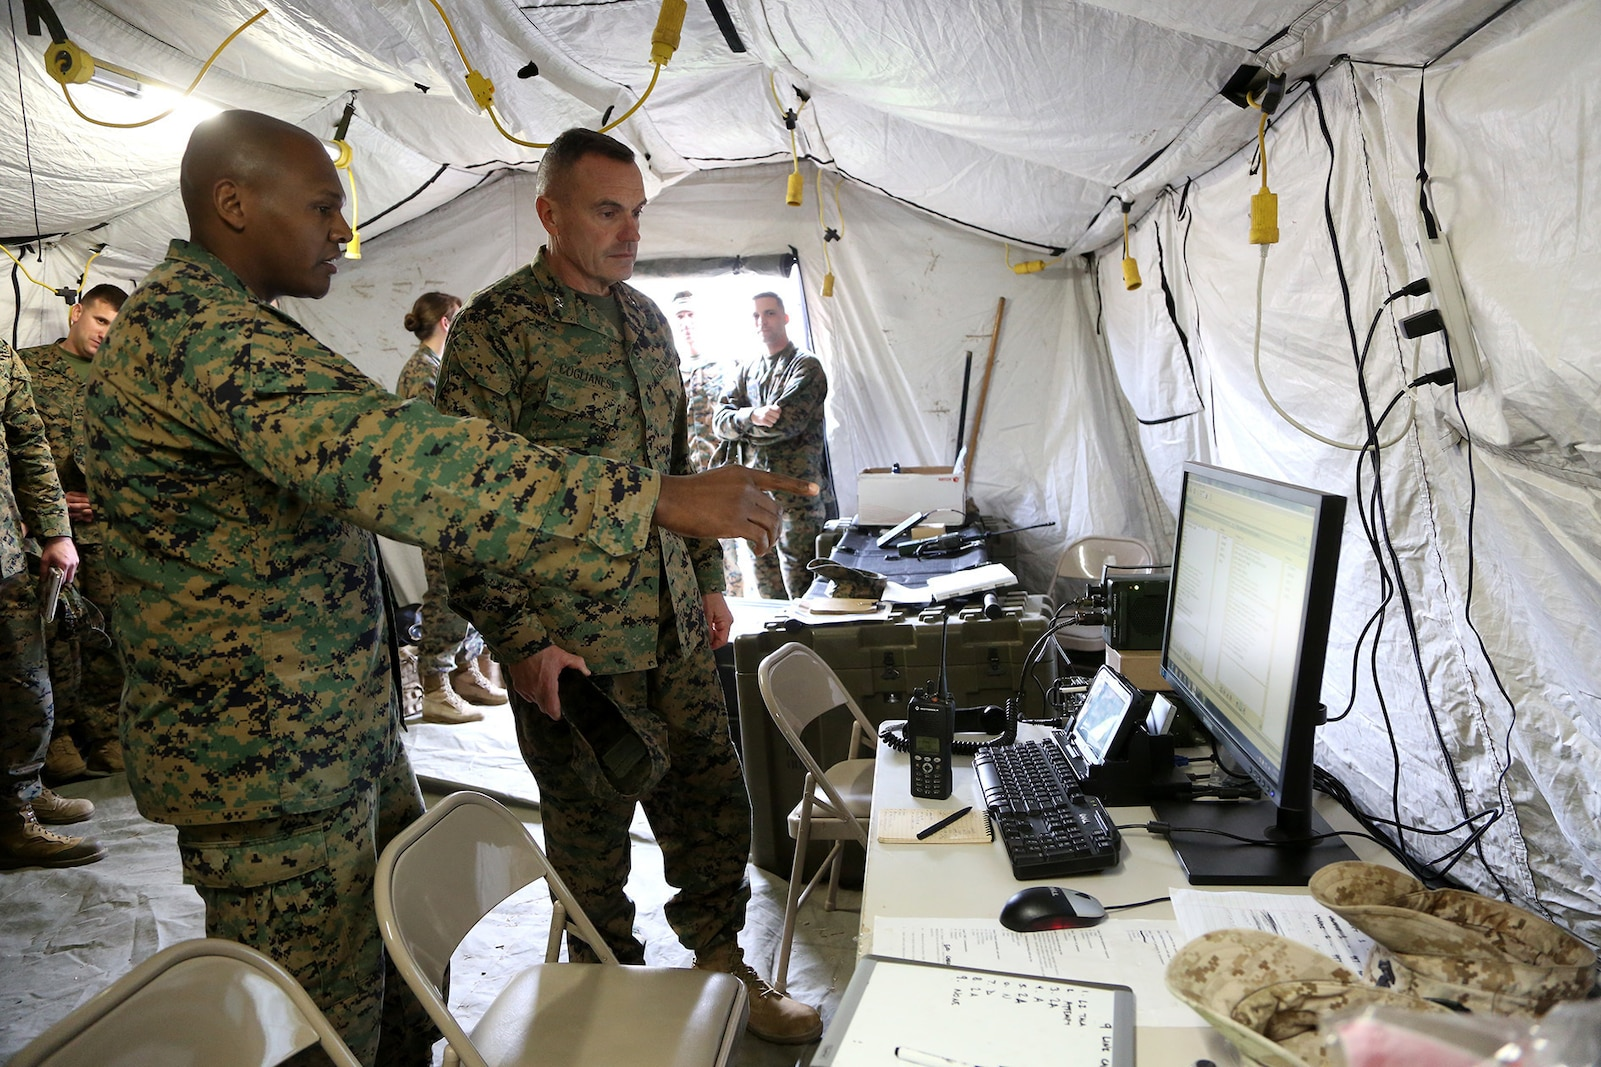 Major Elishama Wheeler, G-6 Operations Officer, Headquarters Regiment, 1st Marine Logistics Group, explains an emerging communications capability called digital interoperability to Maj. Gen. Vincent A. Coglianese, 1st MLG Commanding General, during an en-route care exercise aboard Camp Pendleton, Calif., Jan. 28, 2015. During the four-day exercise, corpsmen trained to prepare a Special-Purpose Marine Air-Ground Task Force group that is going to forward deploy later this year. The more than 40 corpsmen set up a shock trauma platoon facility, or mobile emergency room, to treat simulated casualties. The casualties were stabilized in the STP and then flown out via aircraft. (U.S. Marine Corps photo by Sgt. Laura Gauna/Released)